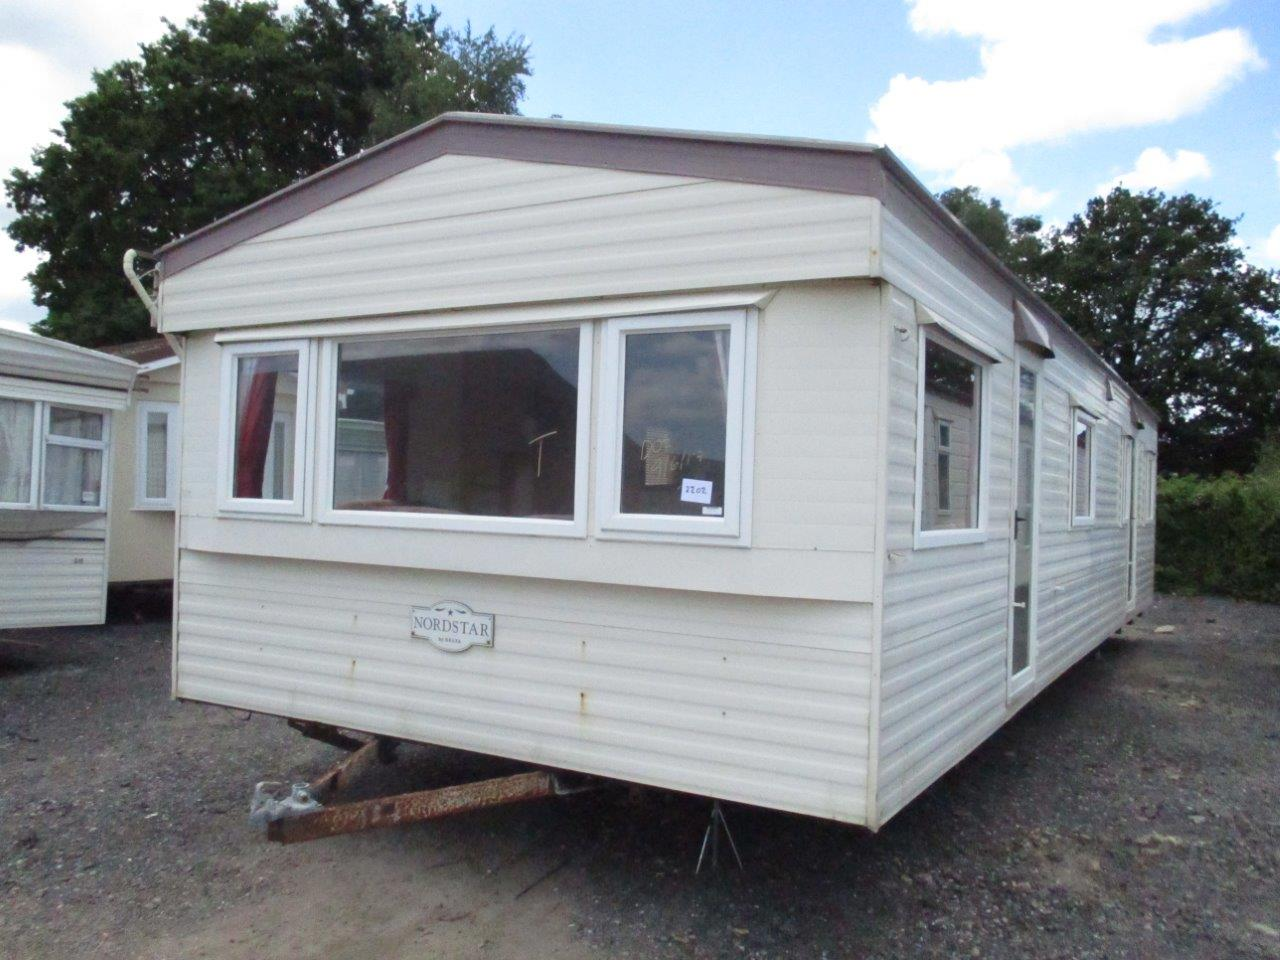 Model New And Second Hand Touring Caravans For Sale In Horsham